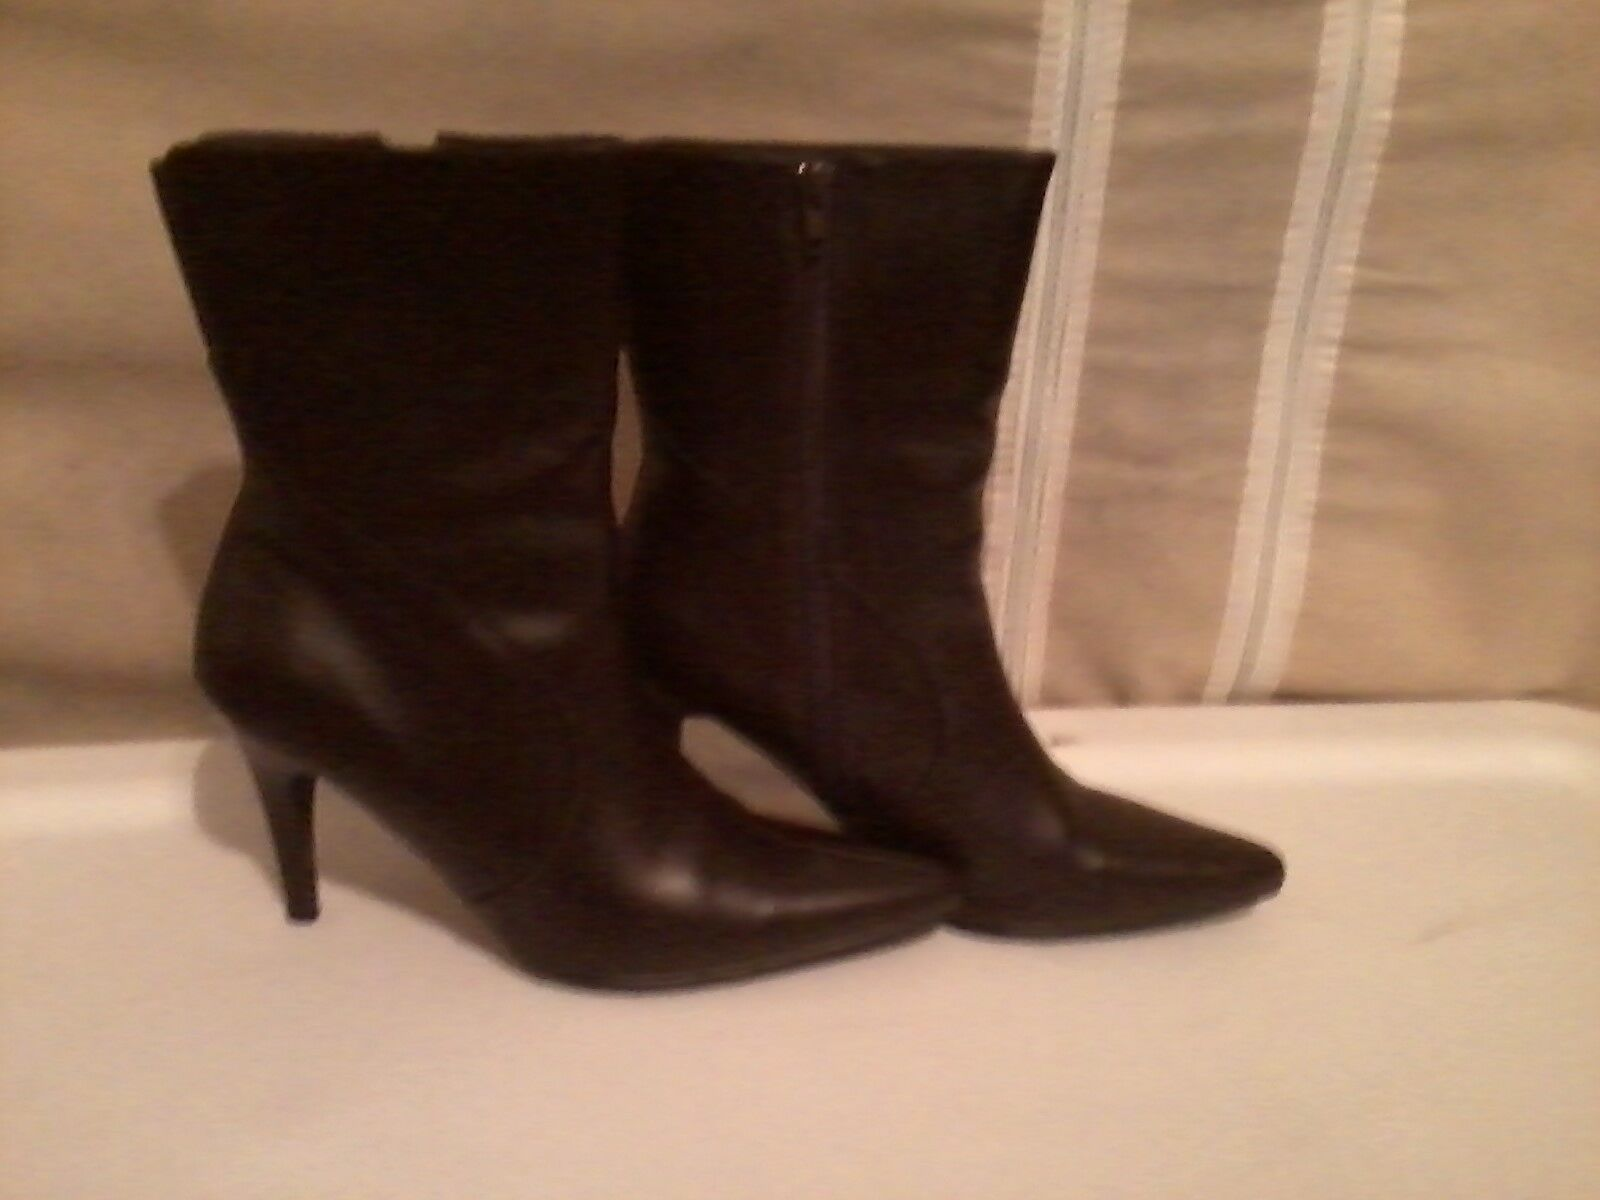 CHADWICKS SOLID BROWN LEATHER 3 IN. ANKLE BOOTS SIZE 8.5 MEDIUM WOMEN